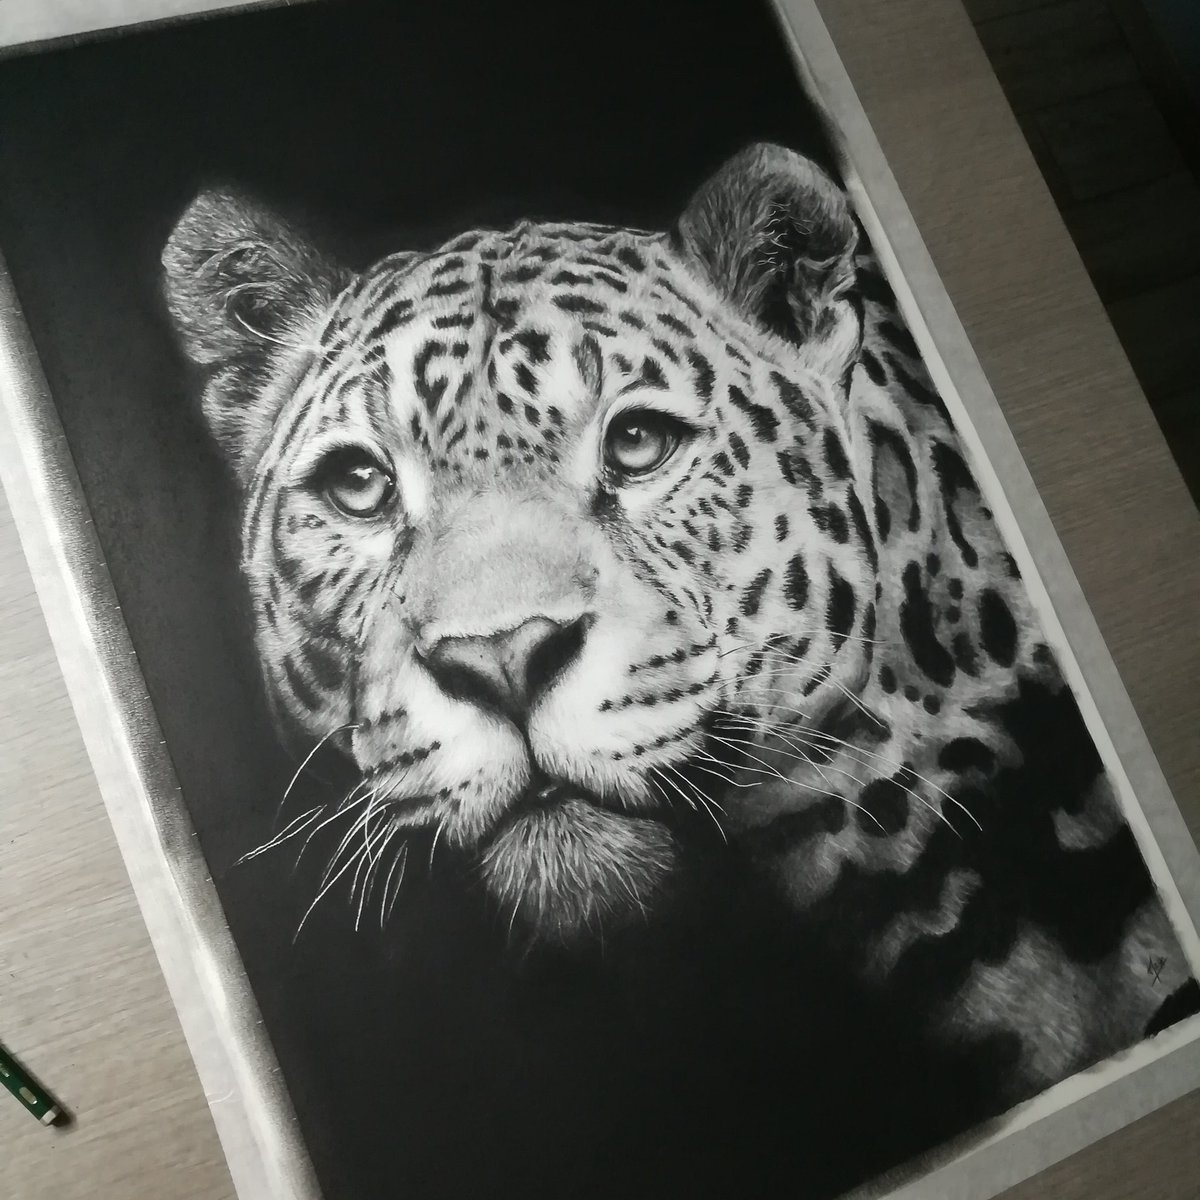 Maglm در توییتر Jaguar Commission Drawing Finished Fabercastell 9000 Graphite Pencils And Staemars Mars Lumograph Black 8b Pencil On Cansonpaper Moulin Du Roy Hot Pressed Paper 40x60cm Ref Pic From